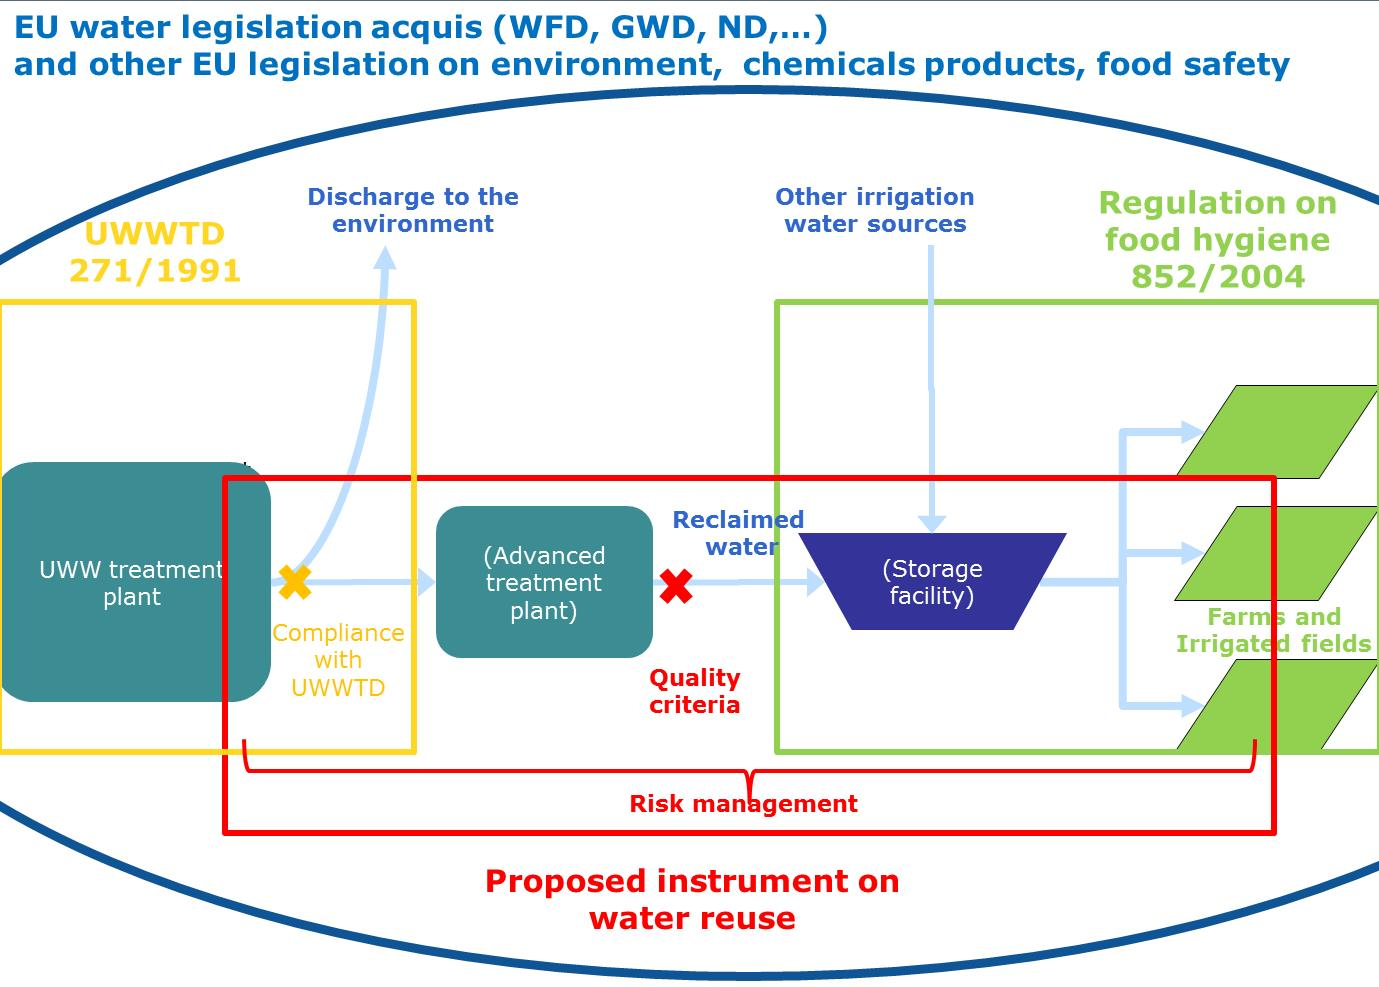 Eur Lex 52018sc024901 En Piping Instrumentation Diagram Water Treatment Plant In This System All Impacts On Surface Waters Ground And Dependent Ecosystems Are Subject To Provisions Of Existing Law Particular The Wfd